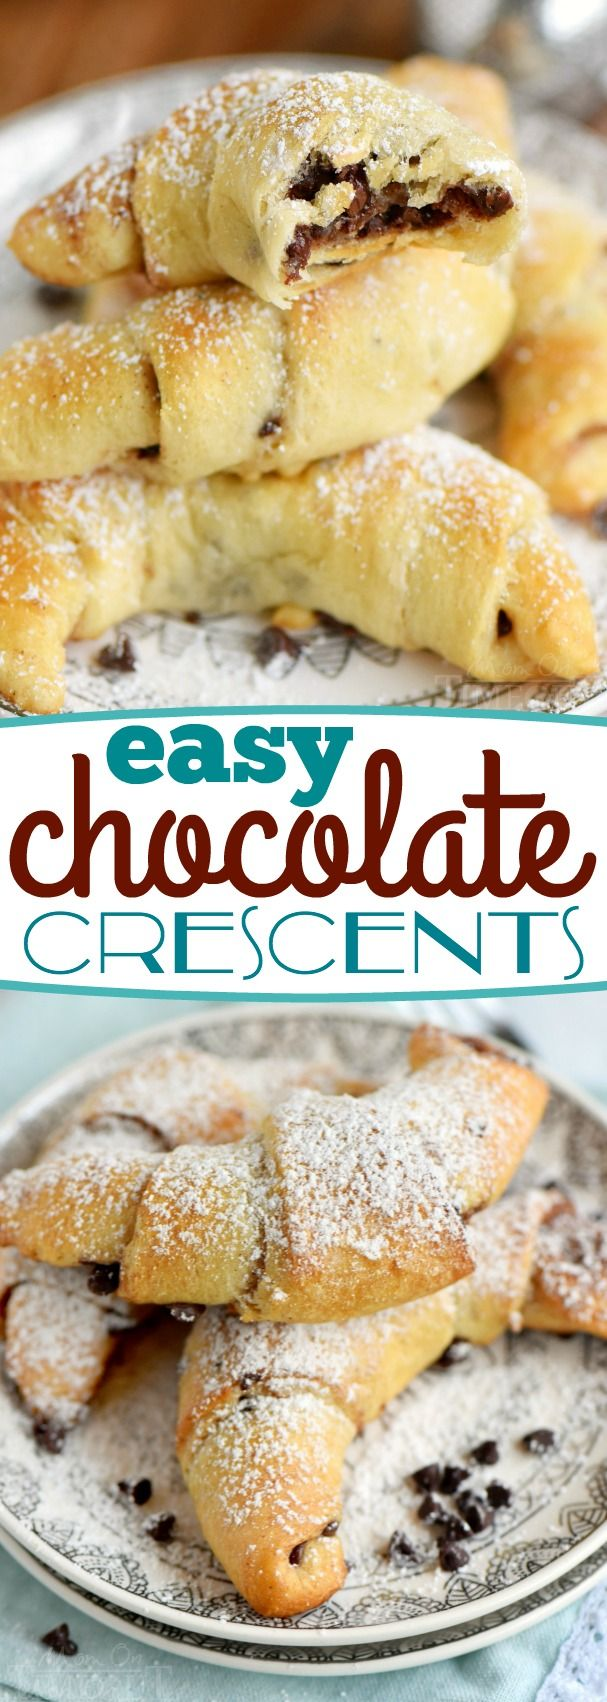 These Easy Chocolate Crescents take just minutes to prepare and use only 4 ingredients! Top with a sweet dusting of powdered sugar and you'll find them hard to resist. Great for breakfast, brunch, or dessert!